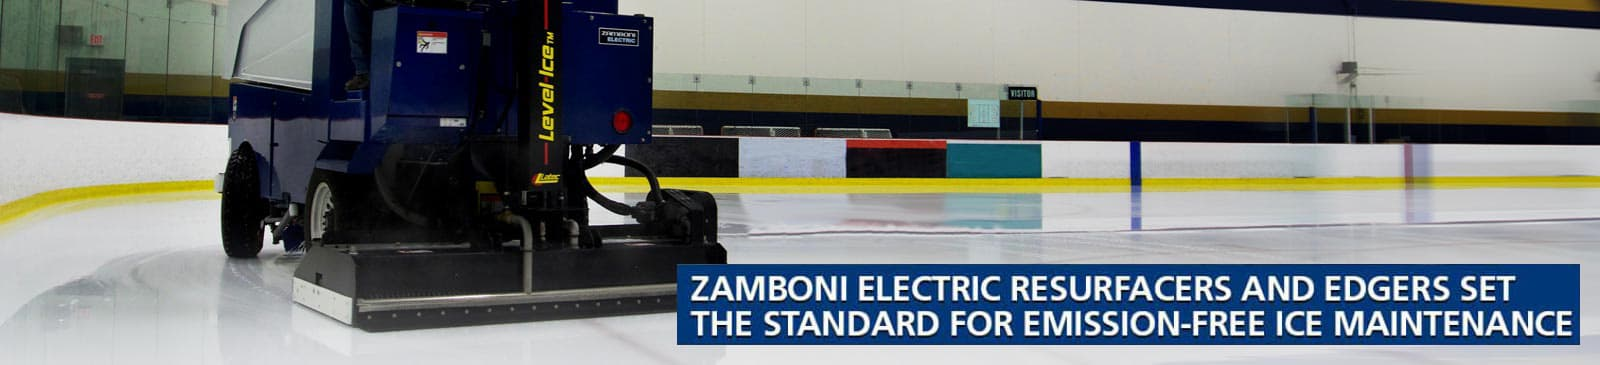 Zamboni electric resurfacers and edgers set the standard for emission-free ice maintenance